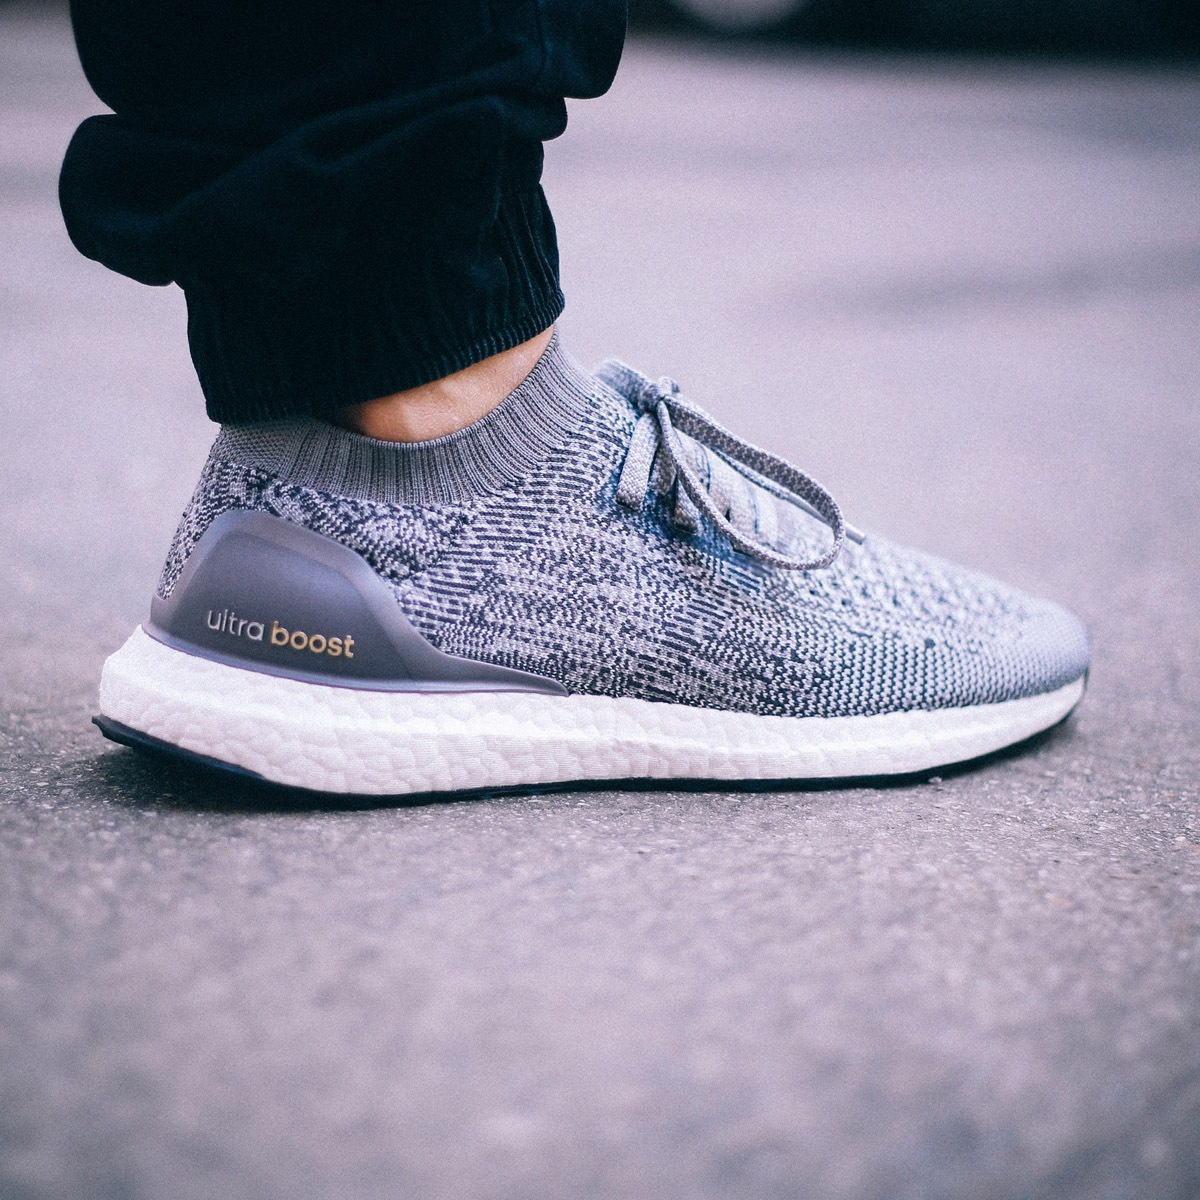 separation shoes 3b53a 40ad5 adidas Ultra Boost uncaged - on feet pics via BSTN | Dead Stock